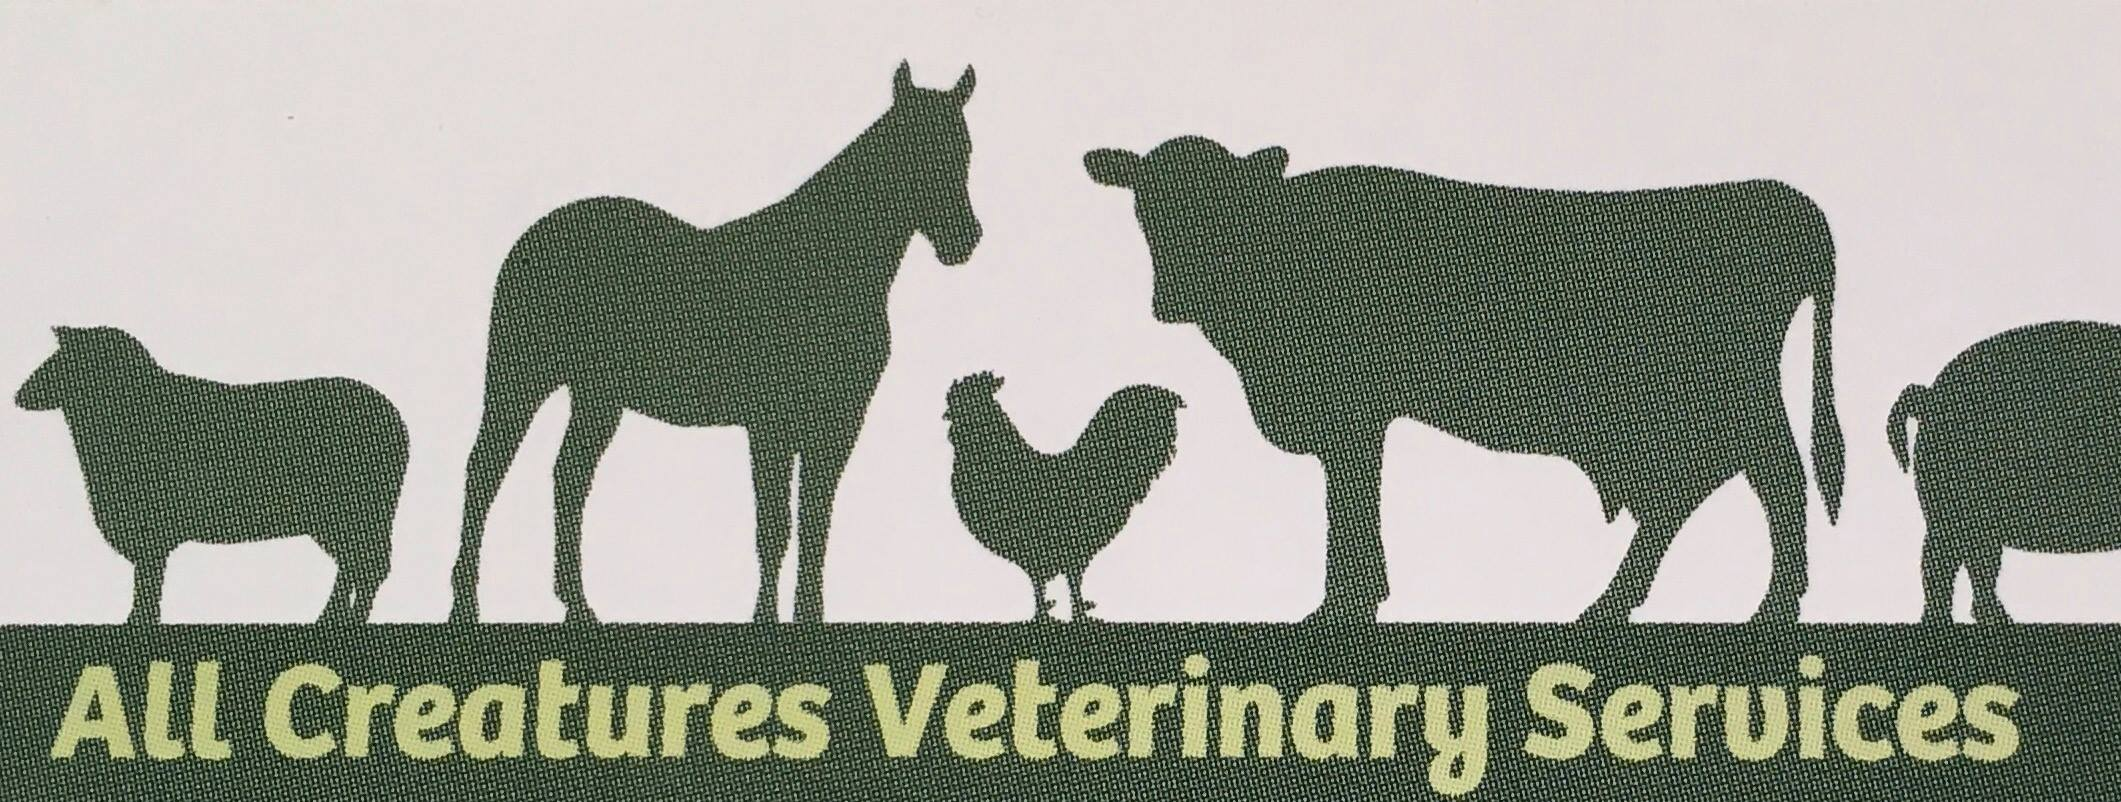 All Creatures Vet Services